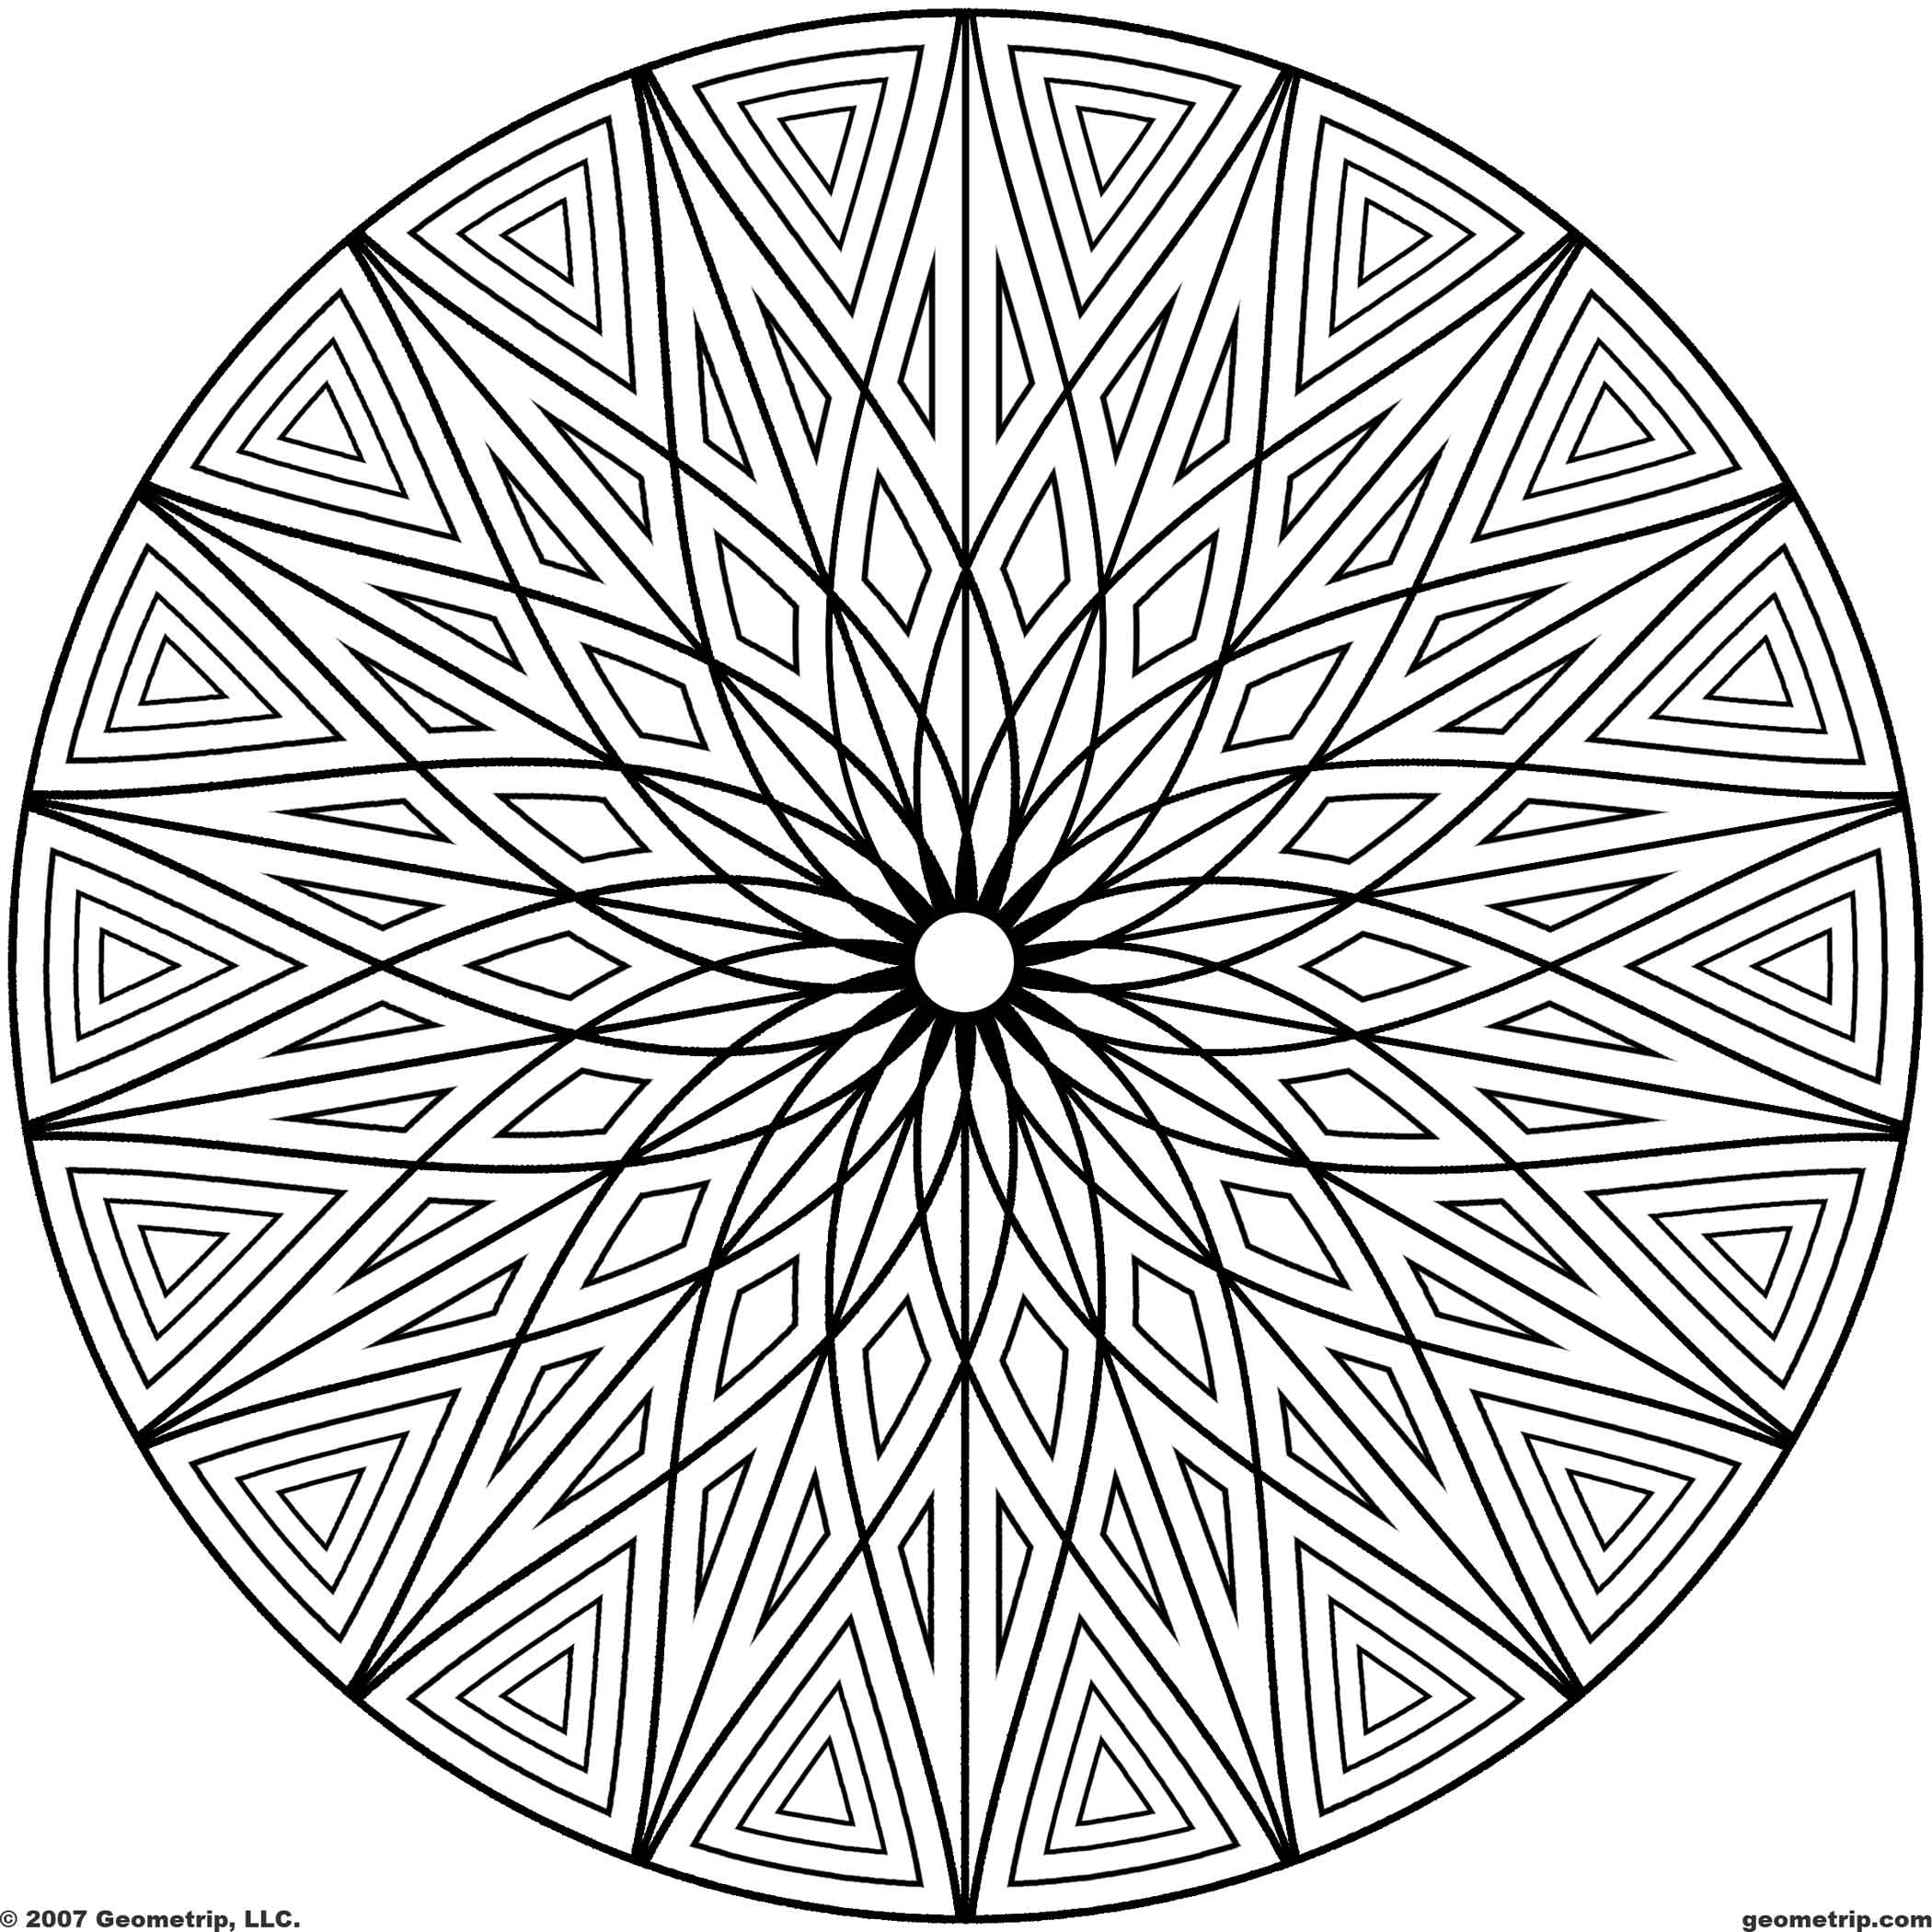 printable designs to color free printable geometric coloring pages for kids to designs printable color